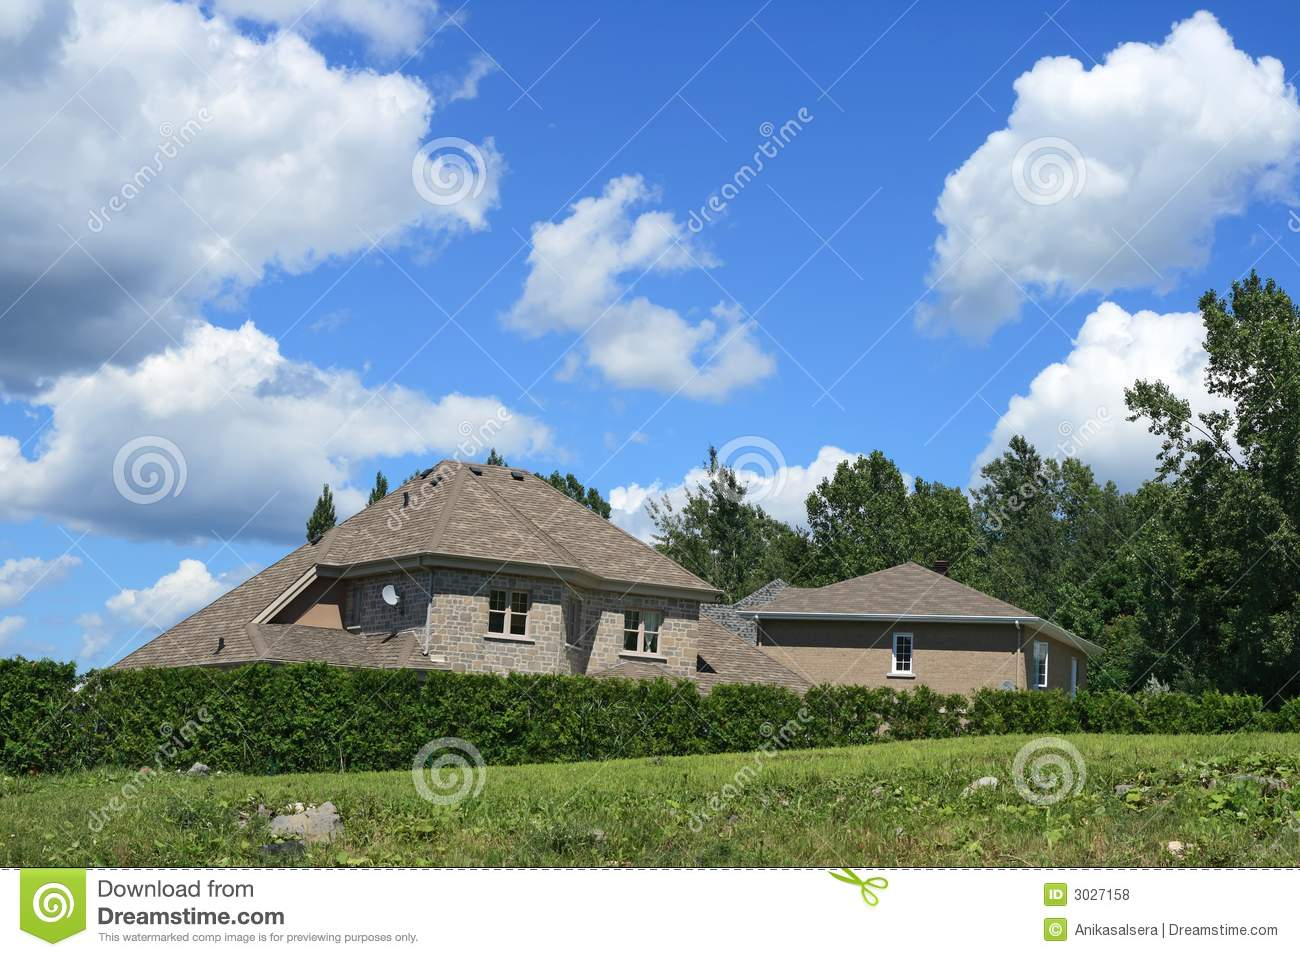 New big house royalty free stock photos image 3027158 for New house big